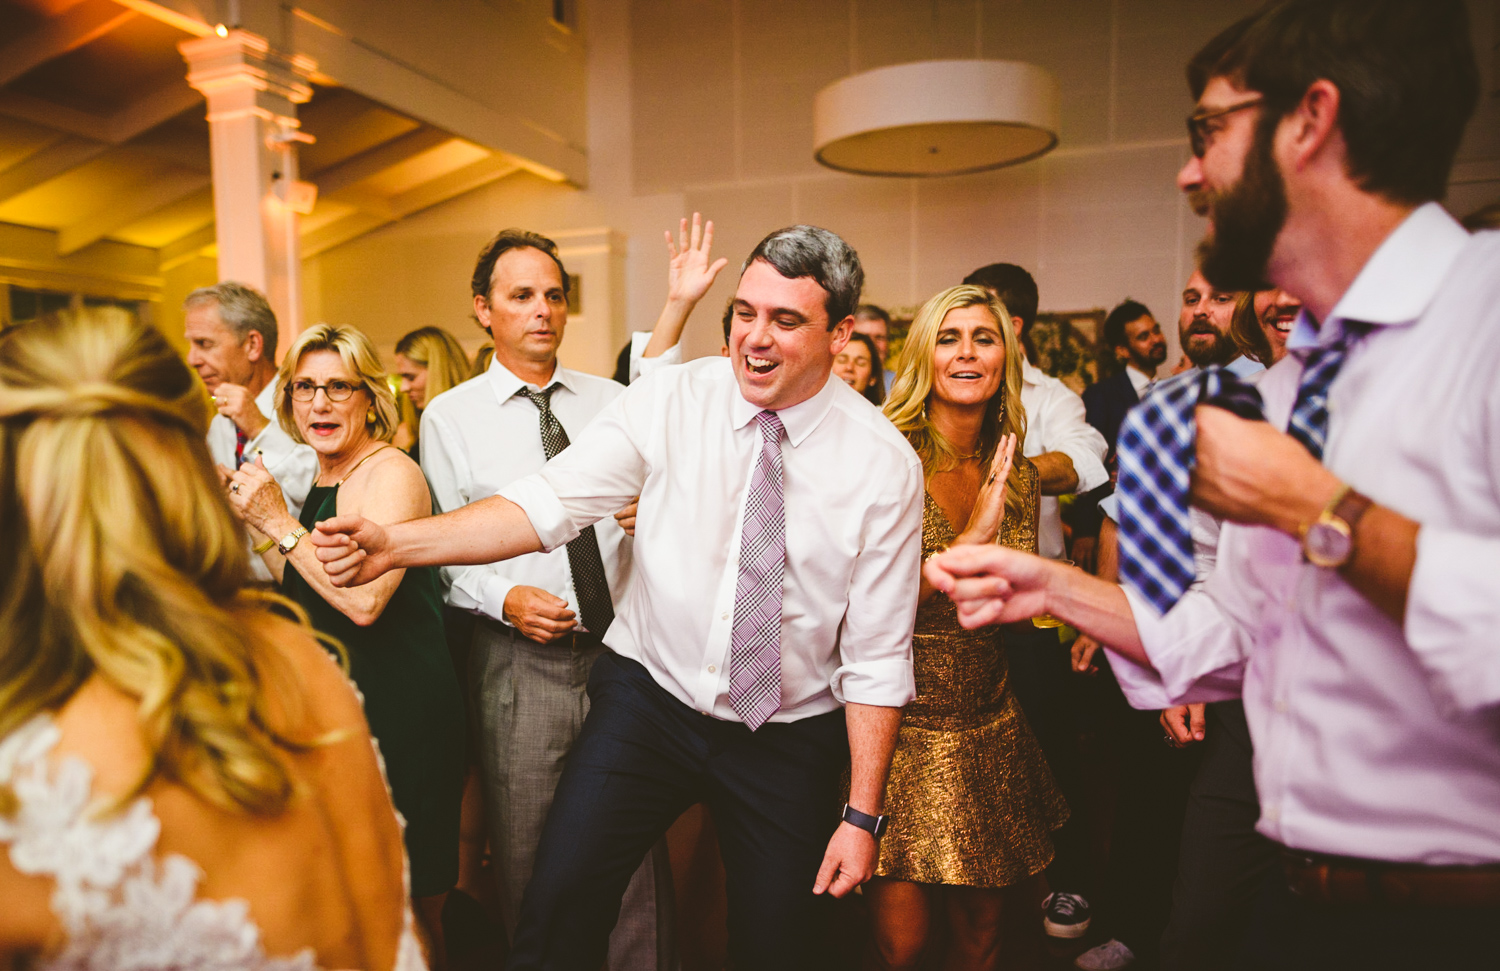 015 - groom dances during wedding reception.jpg